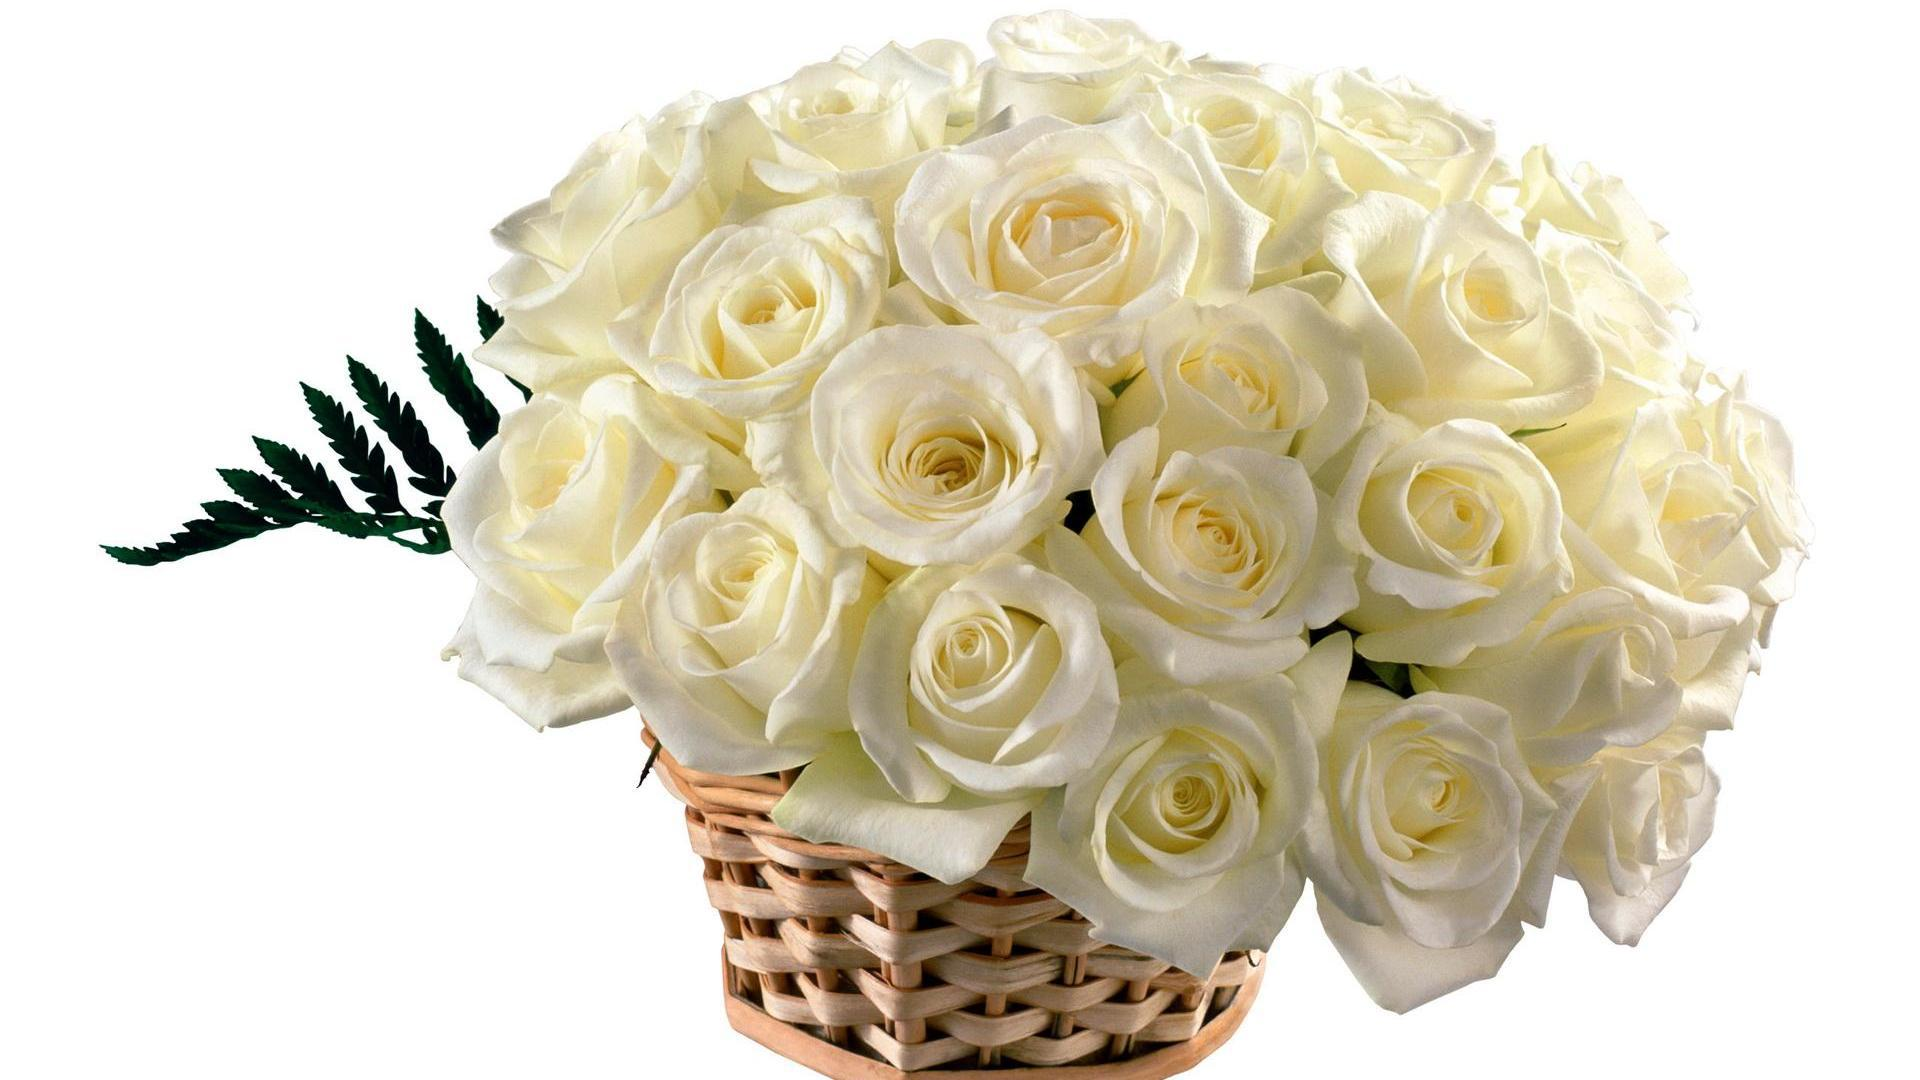 White roses best hd free wallpapers hd wallpaper white roses best hd free wallpapers mightylinksfo